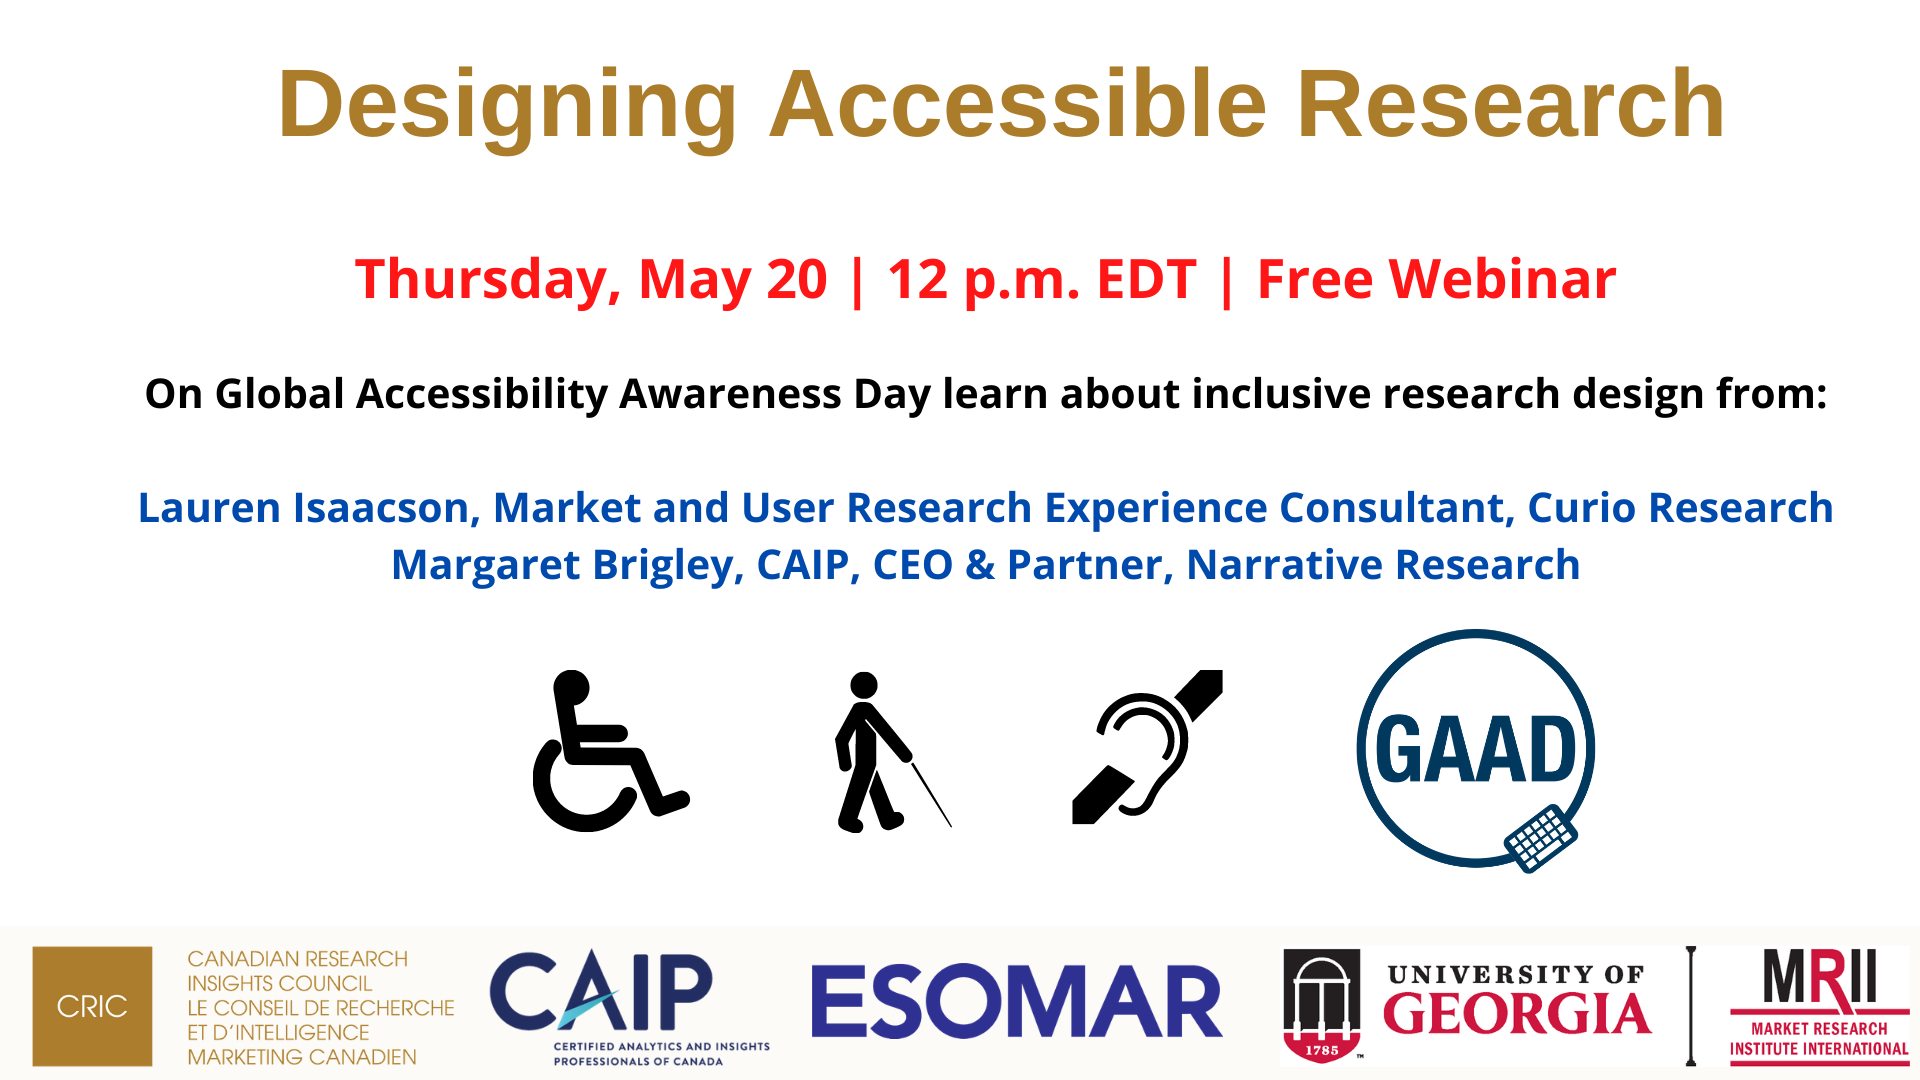 Accessible Research Webinar Image